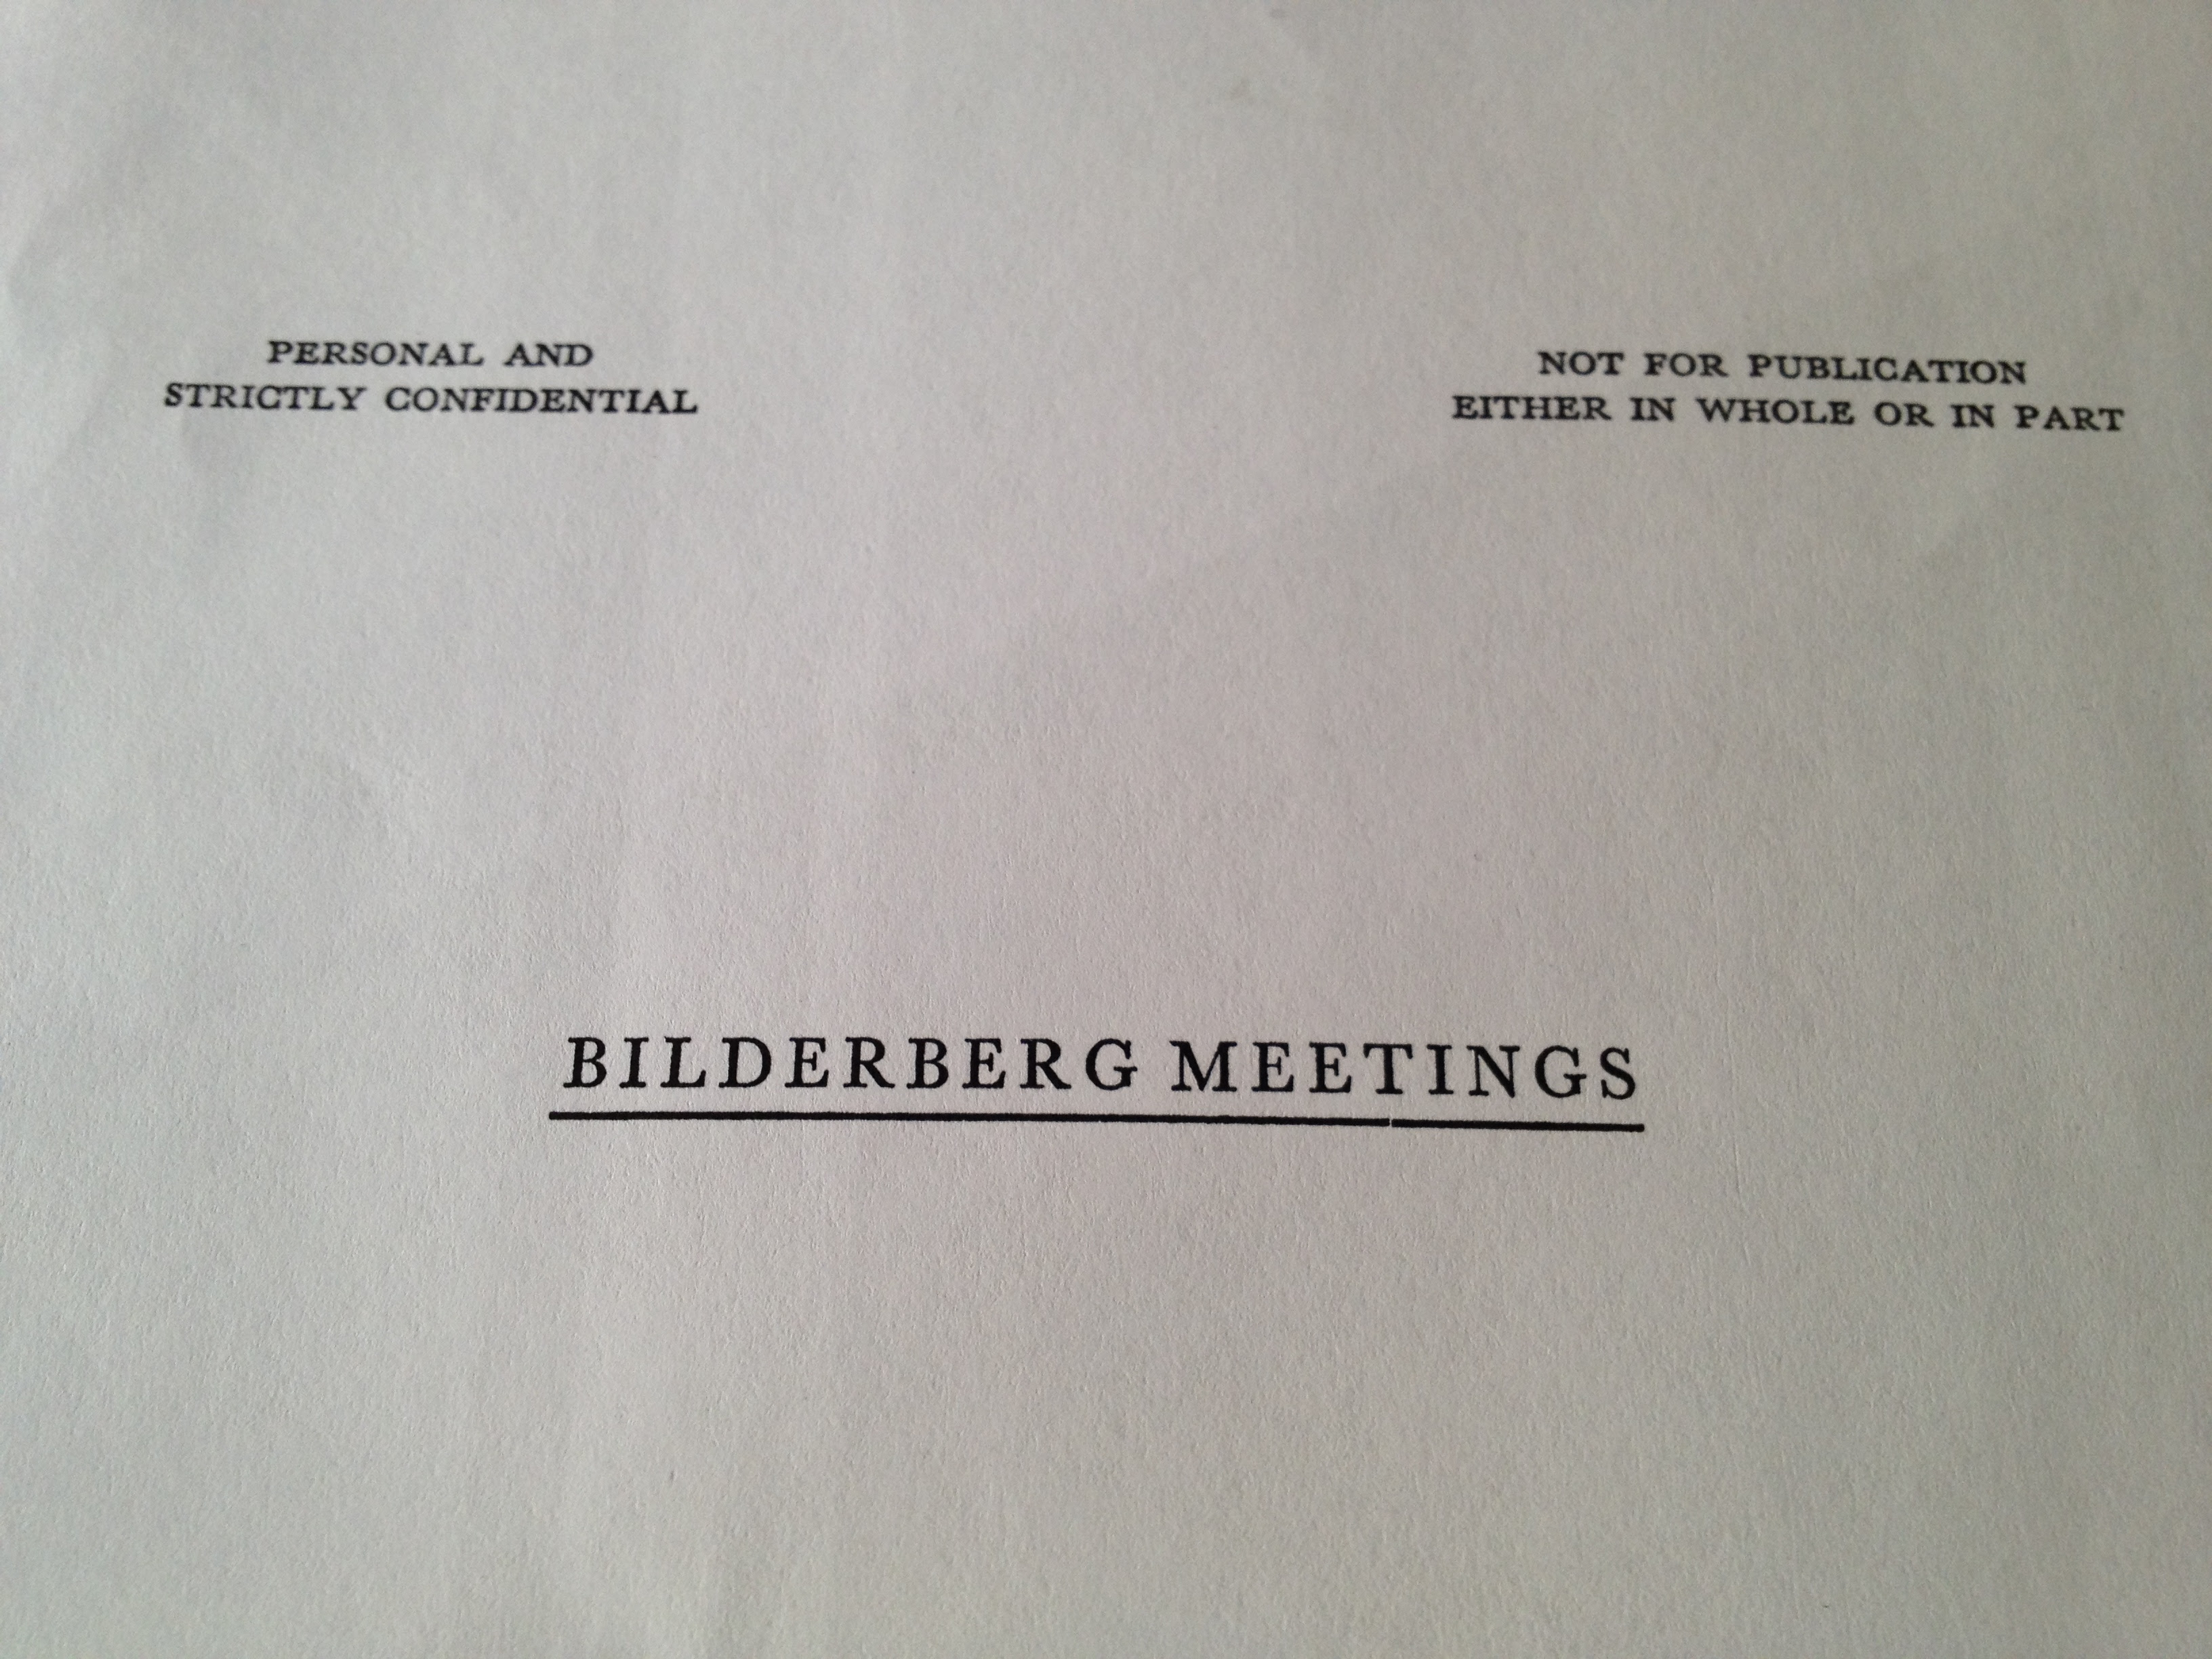 Leaked Bilderberg Documents: Nationalism Is Dangerous